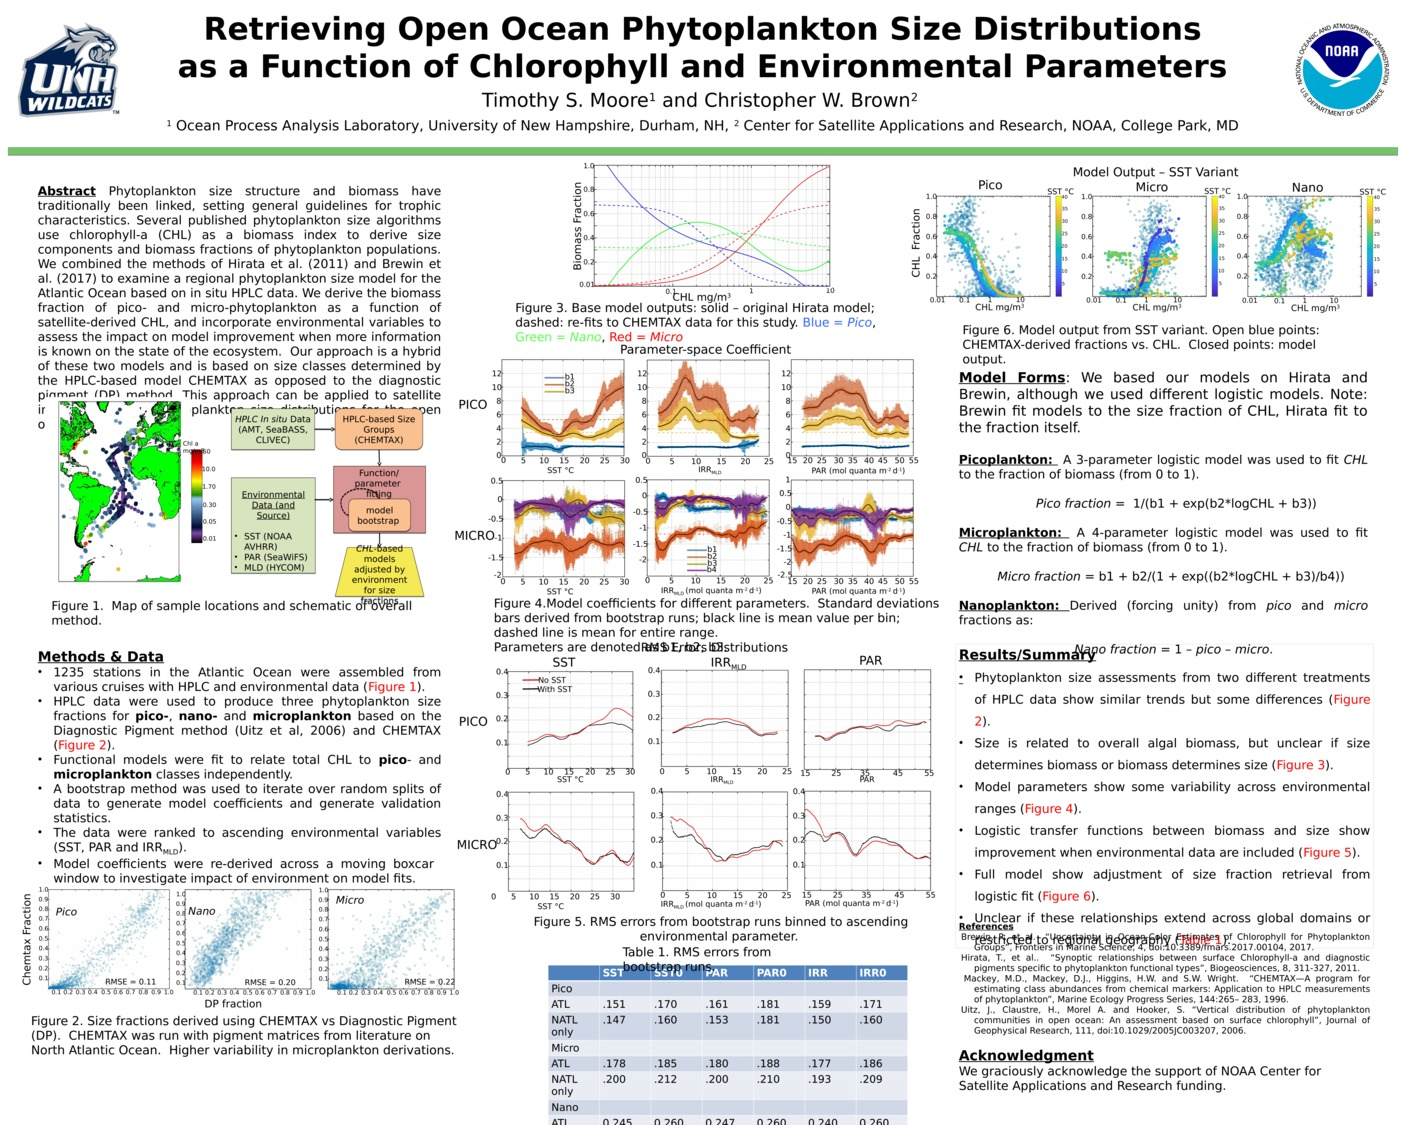 Retrieving Open Ocean Phytoplankton Size Distributions As A Function Of Chlorophyll And Environmental Parameters by tsmoore